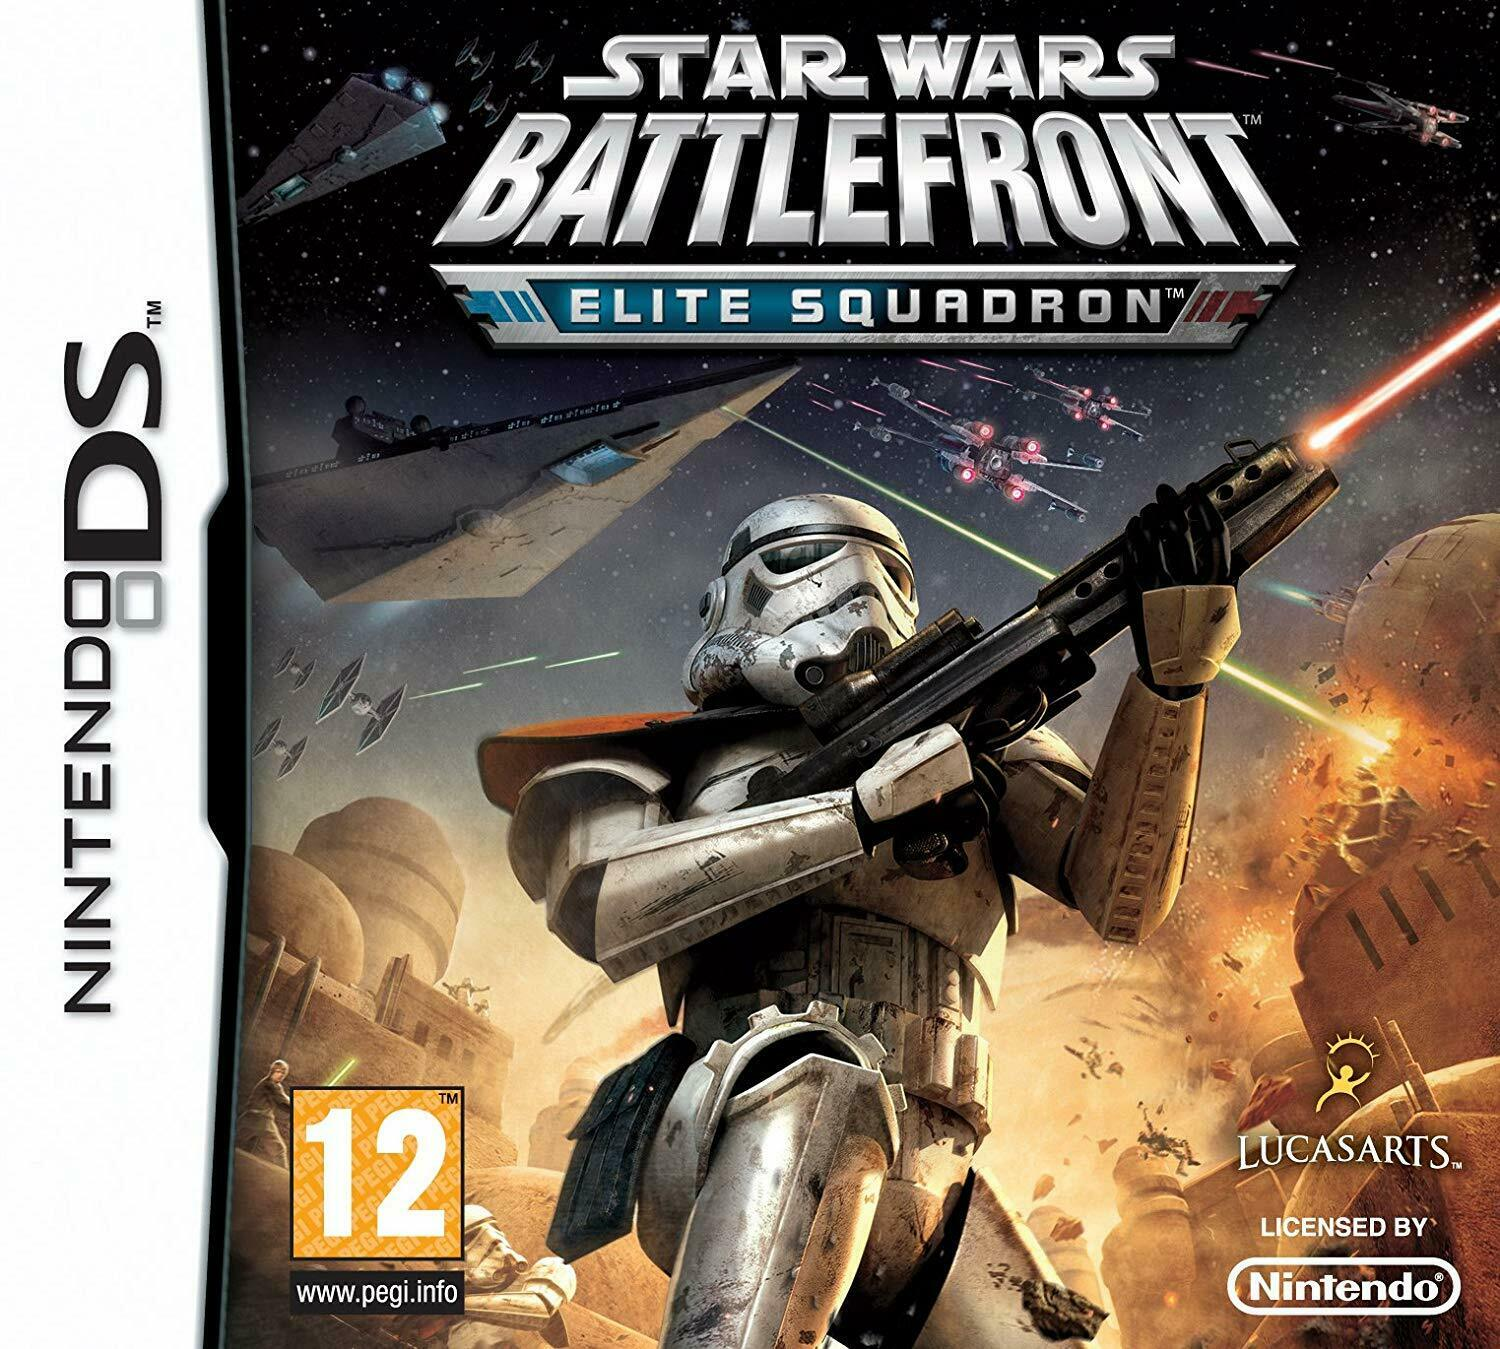 Star Wars Battlefront: Elite Squadron - Occasion StarWars